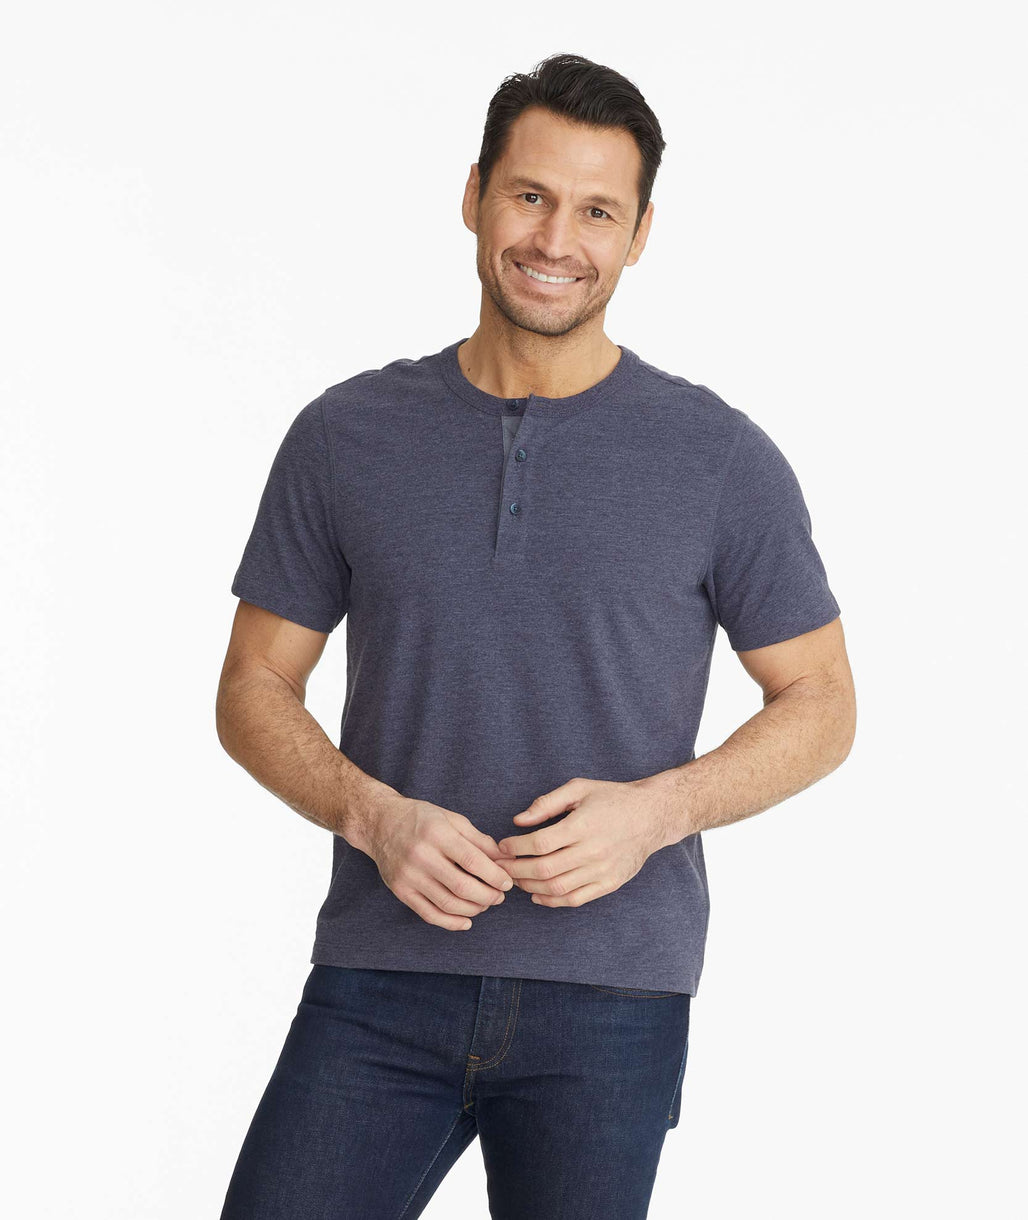 Model wearing a Dark Blue Ultrasoft Short-Sleeve Henley